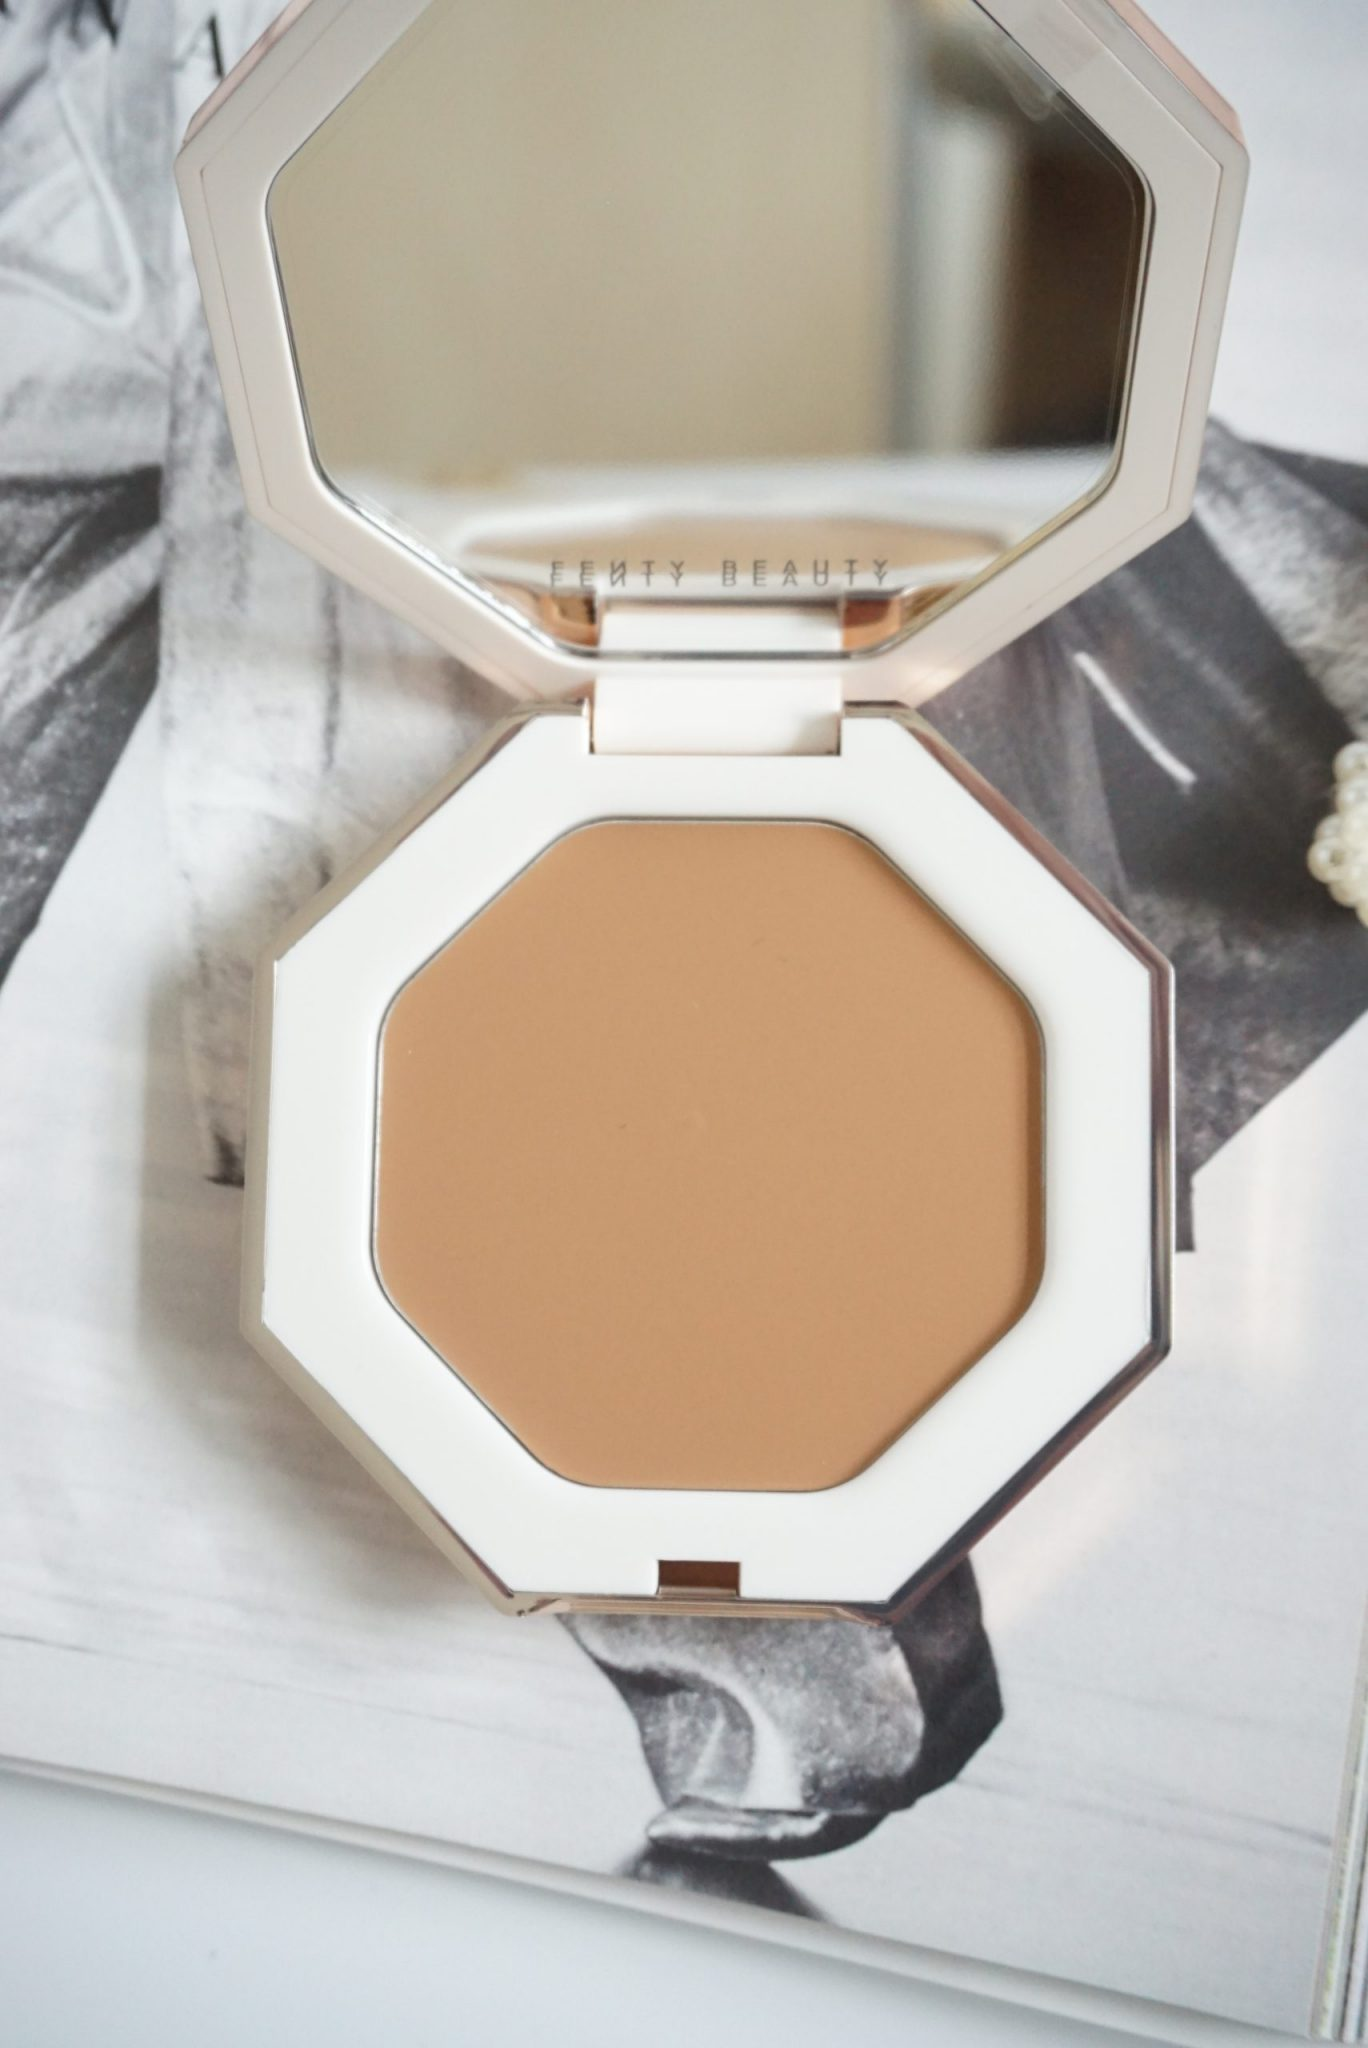 NEW FENTY BEAUTY CHEEKS OUT FREESTYLE CREAM BRONZER & BLUSHES